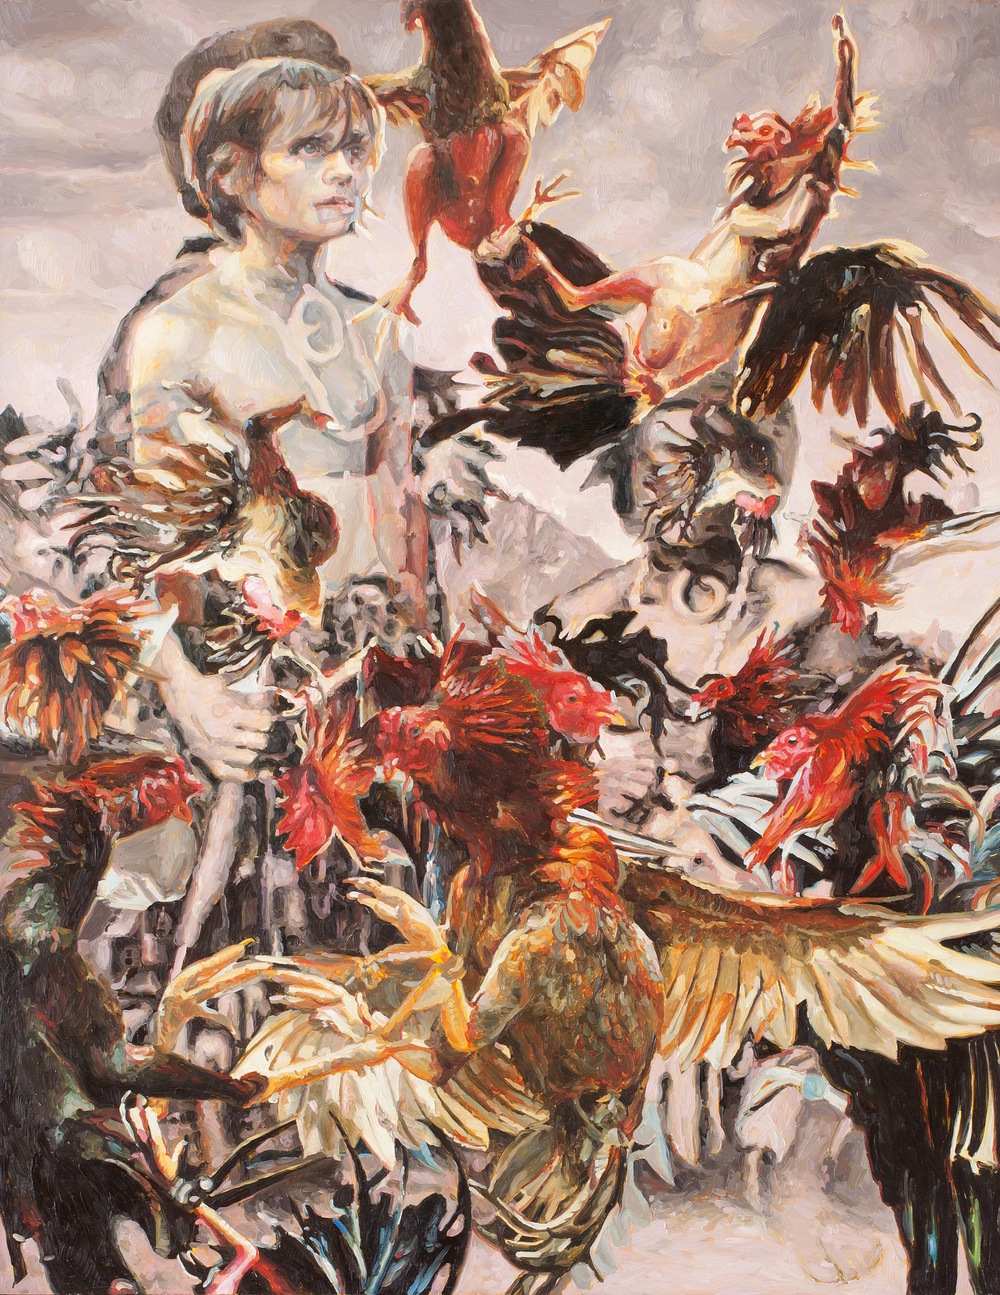 Penned Like Chickens Eaten Like Chickens, oil on board, 90 x 70cm, 2014.